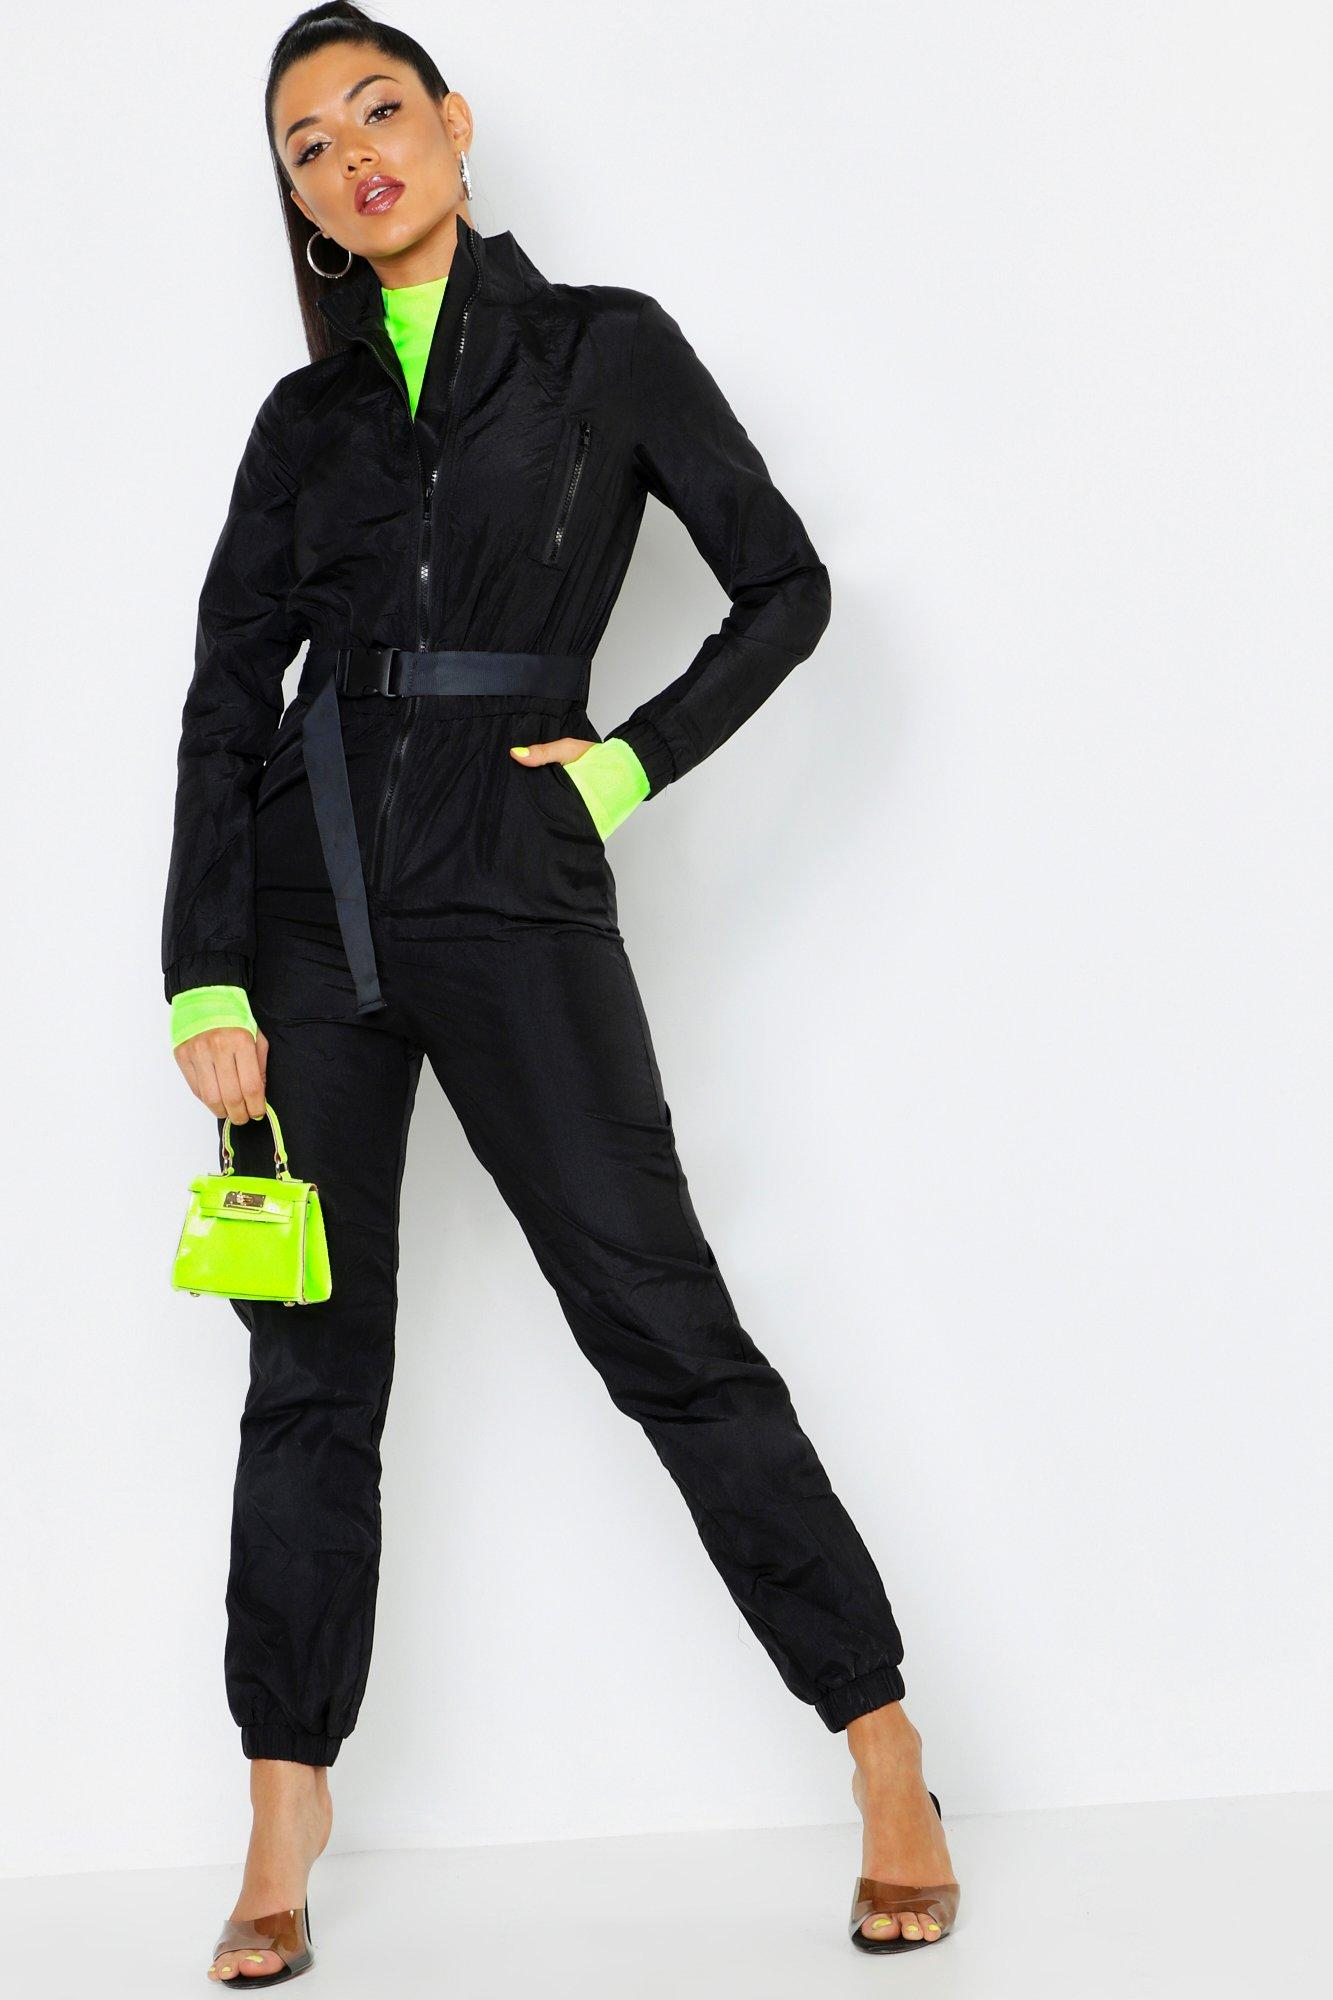 Shell Suit Safety Buckle Jumpsuit